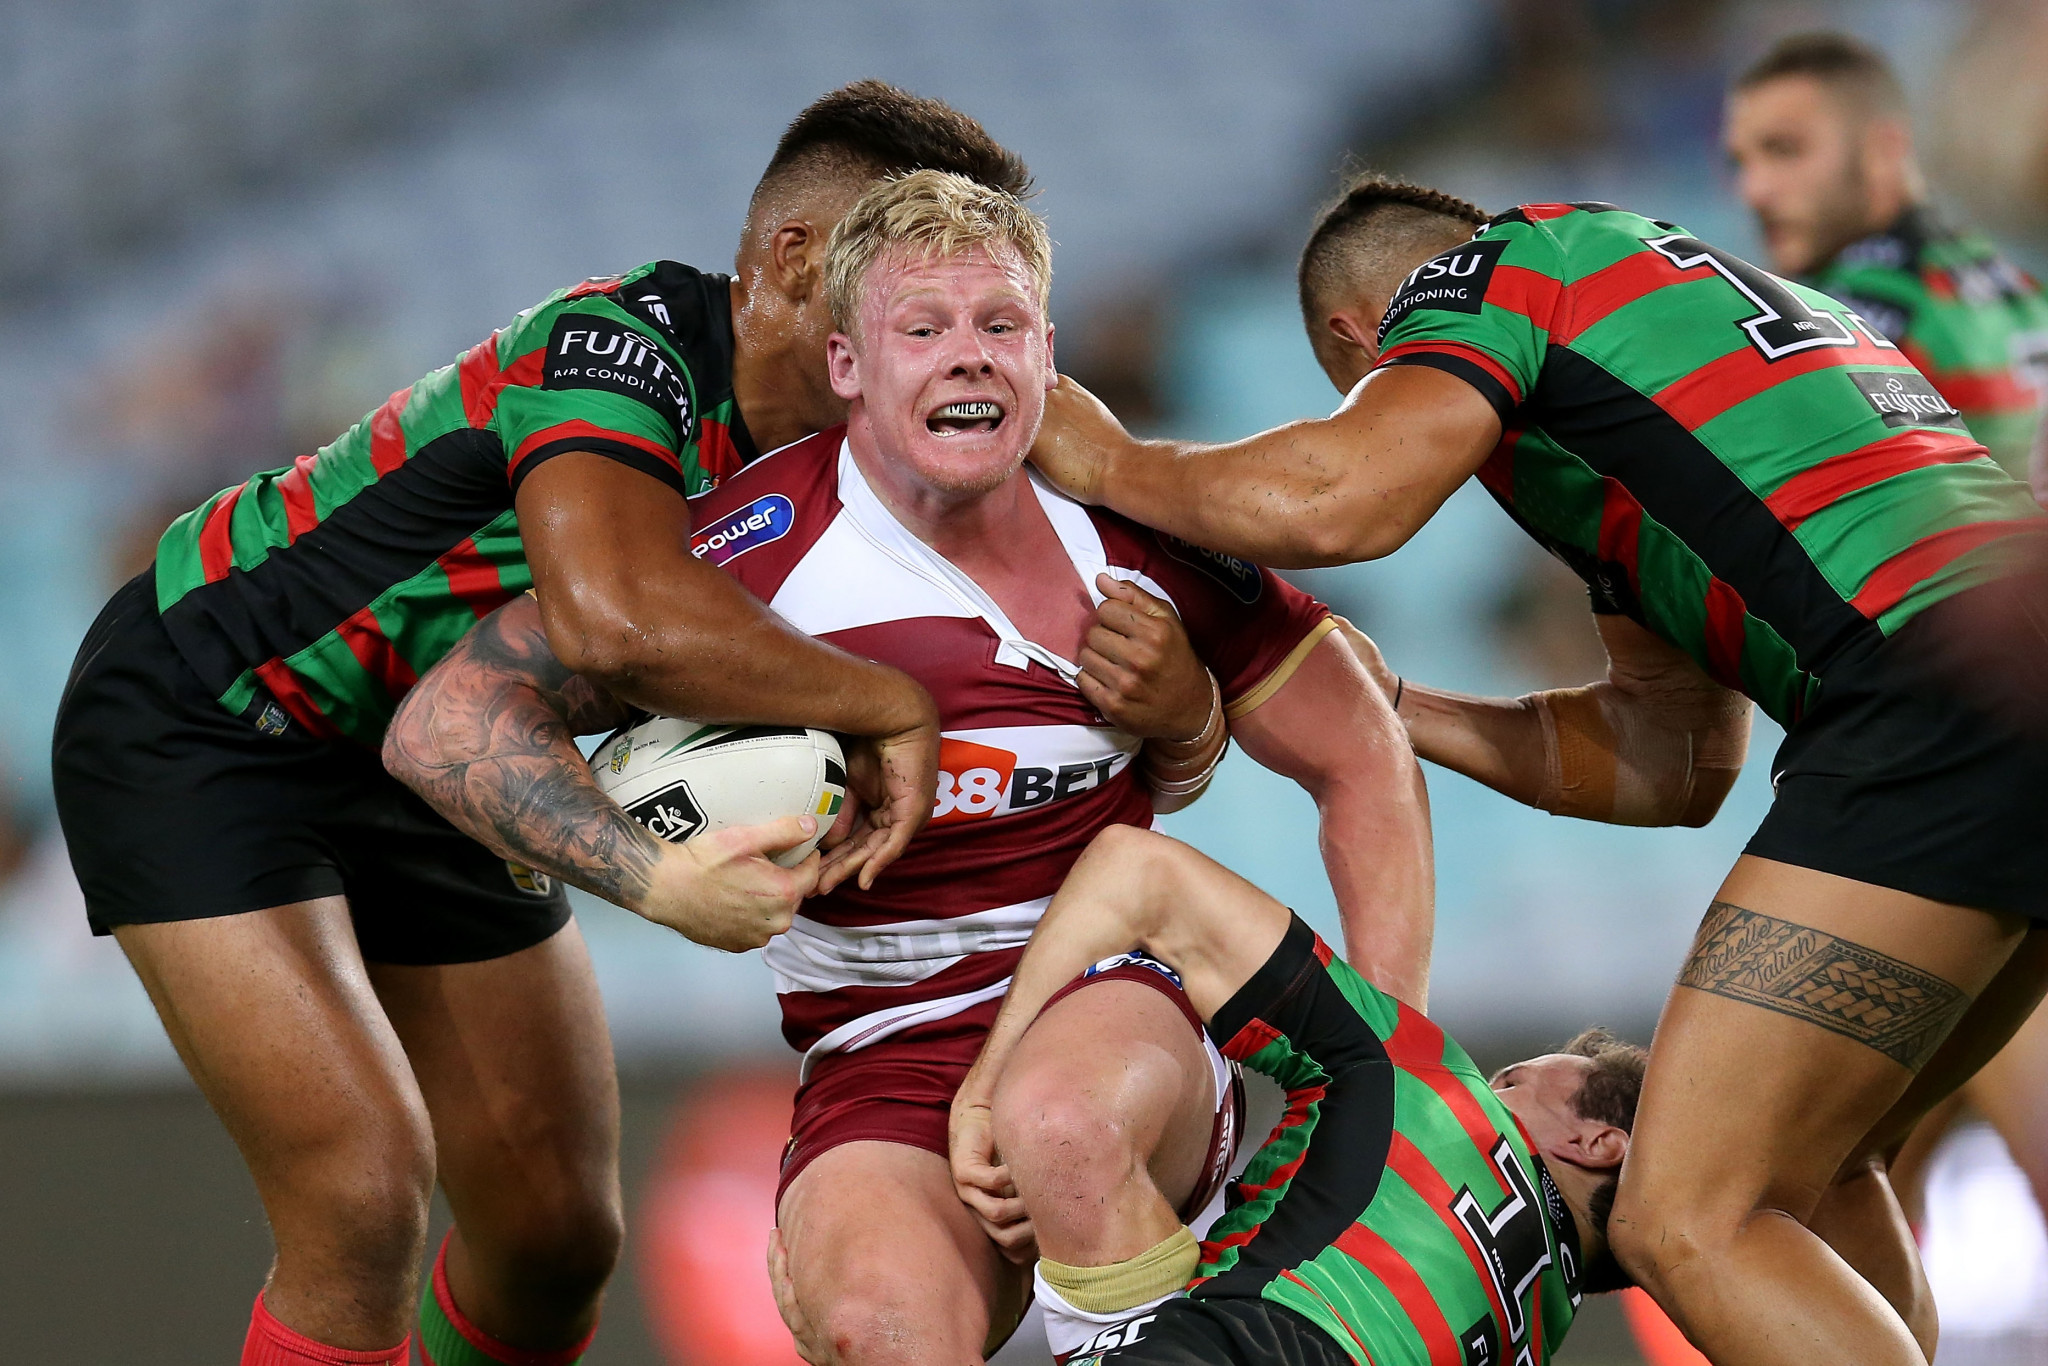 Australian rugby league player suspended after UK Anti-Doping violation charge